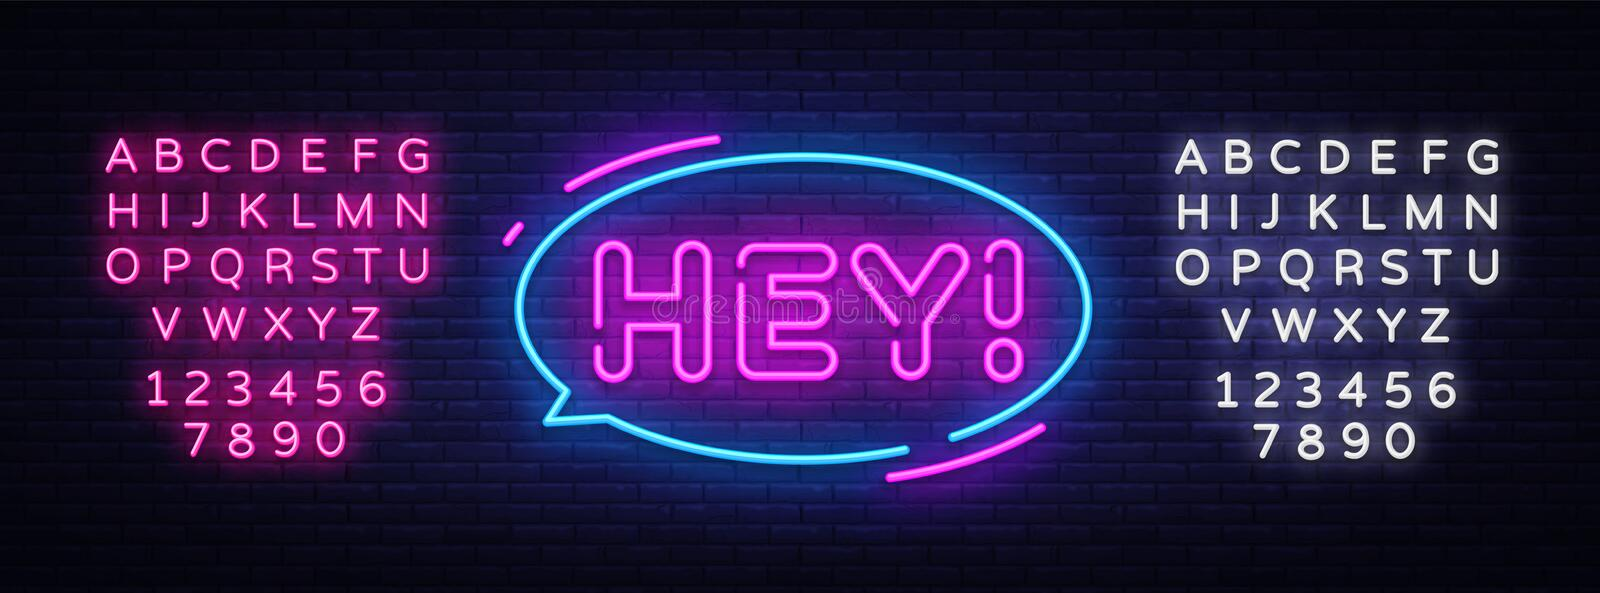 Hey neon text vector design template. Hey sticker neon, light banner design element colorful modern design trend, night. Bright advertising, bright sign. Vector royalty free illustration